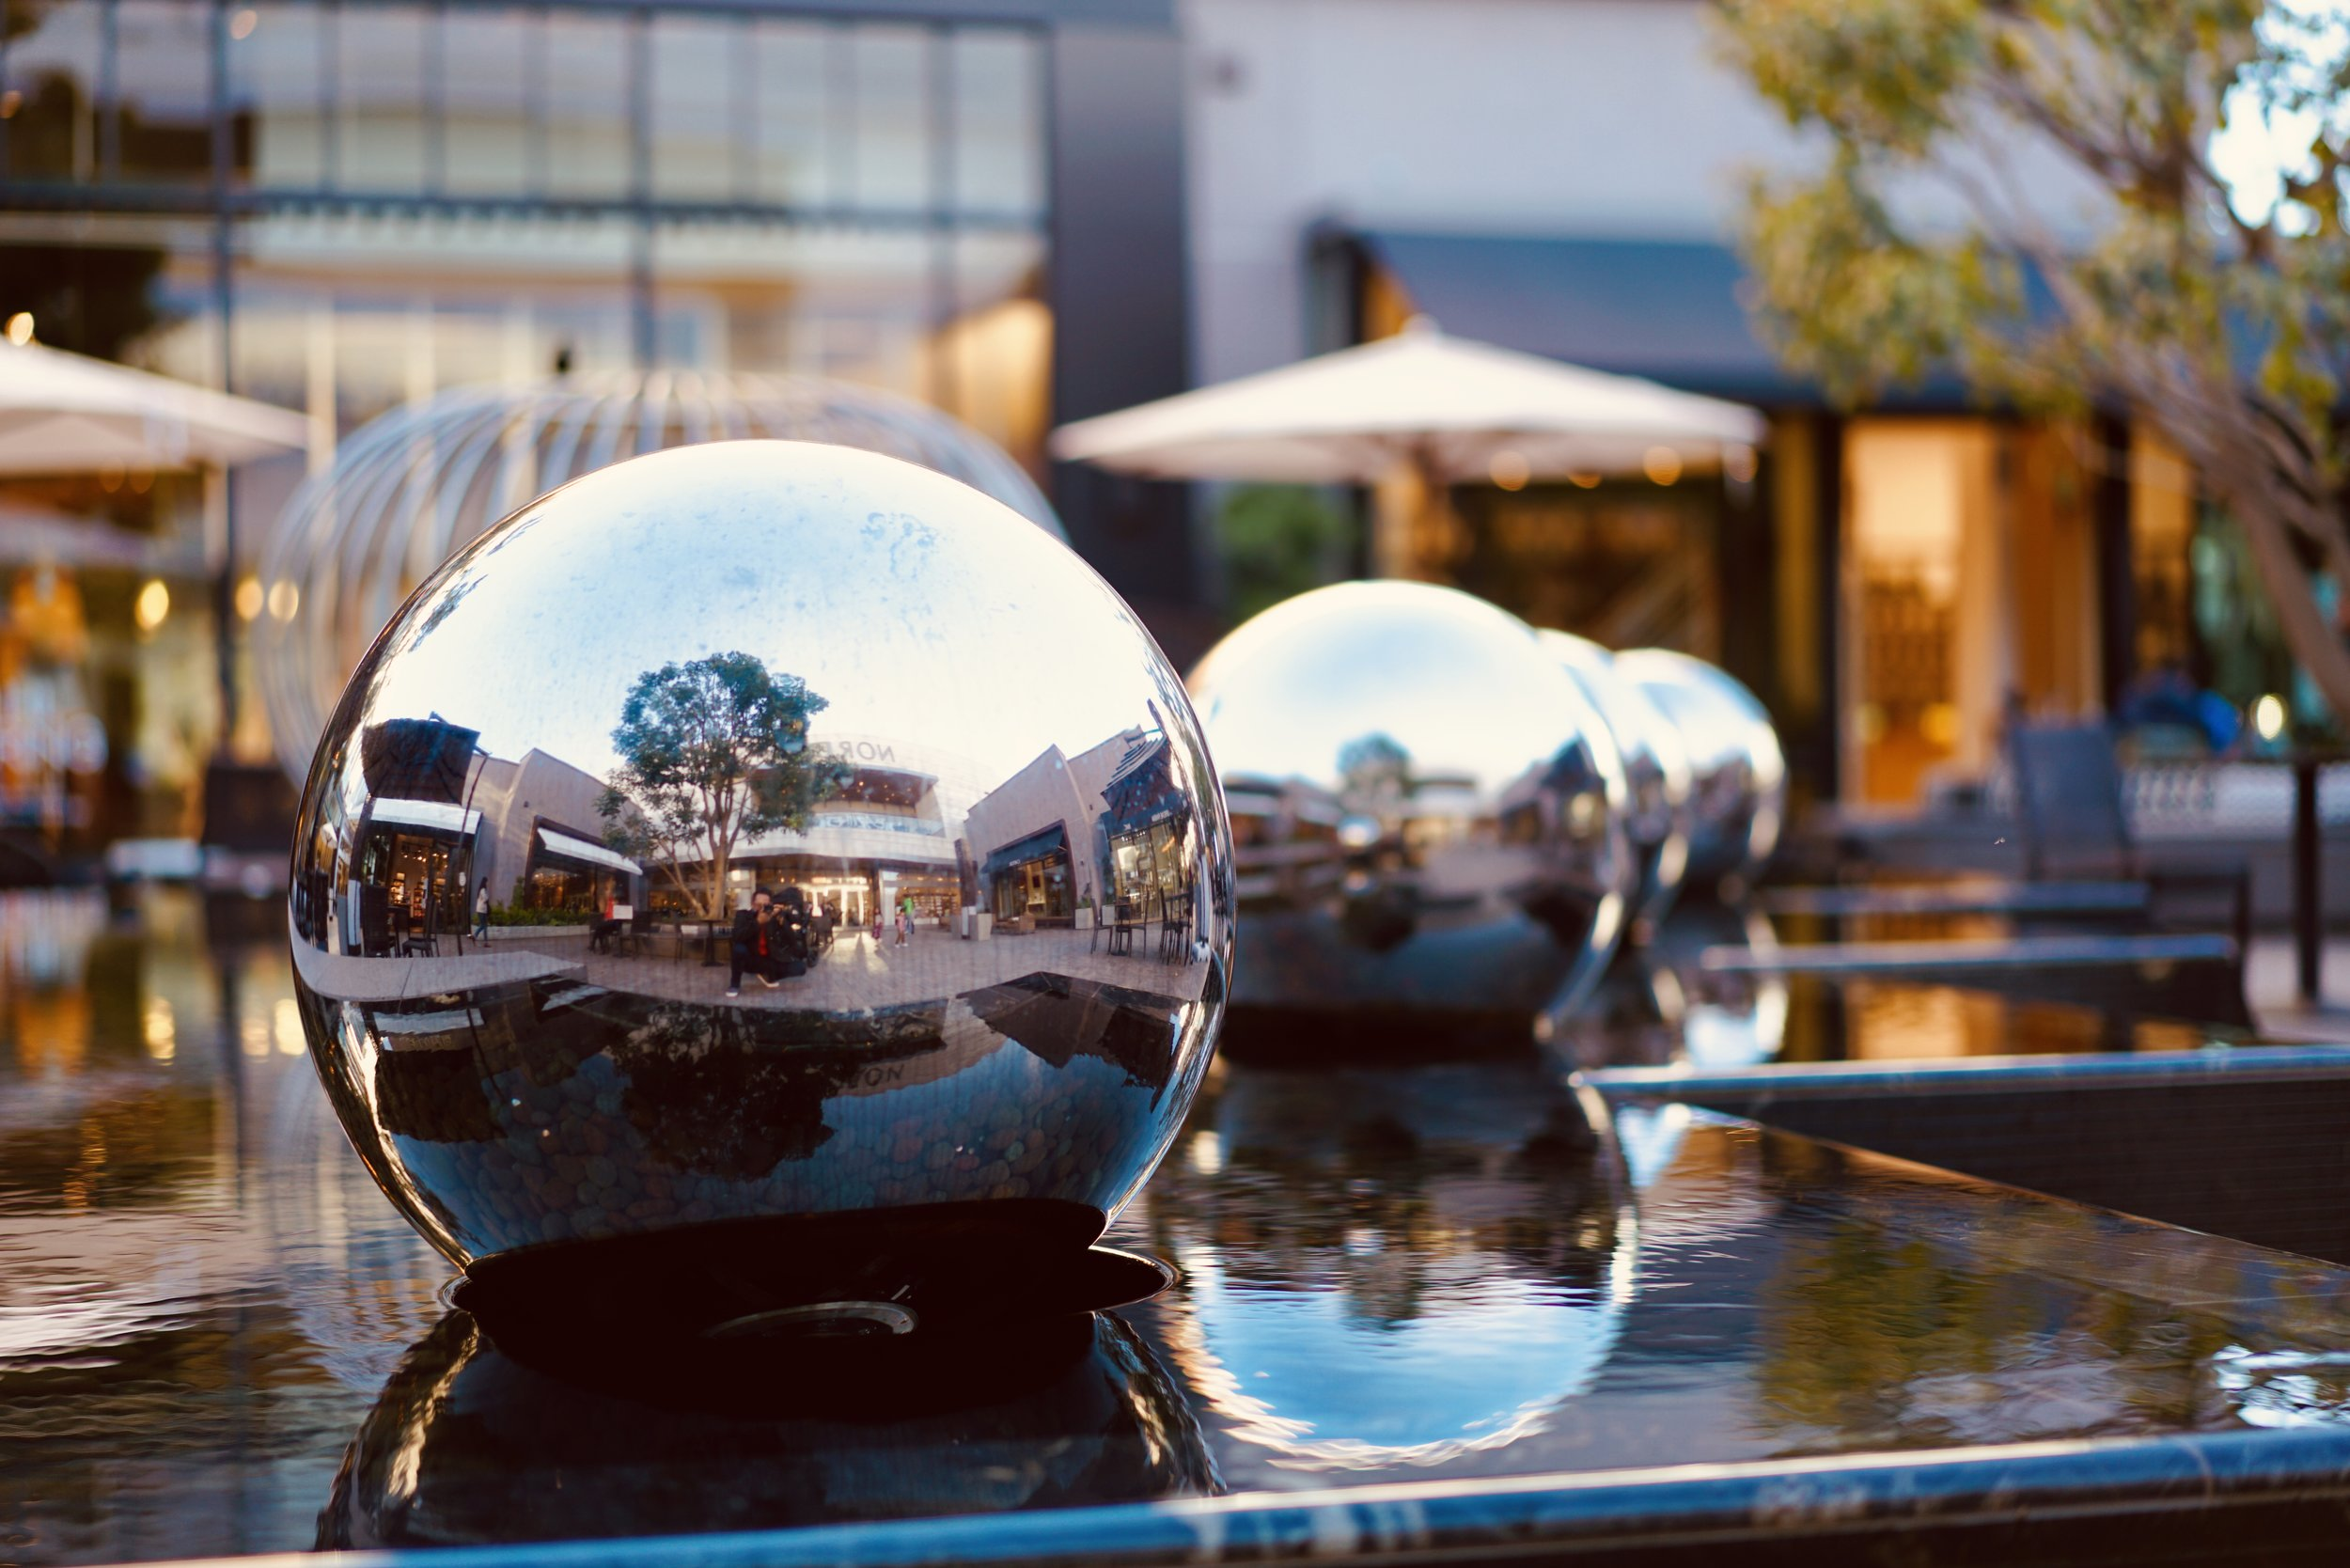 The water fountain / reflection balls outside of Nordstrom. See if you can find the entire family.